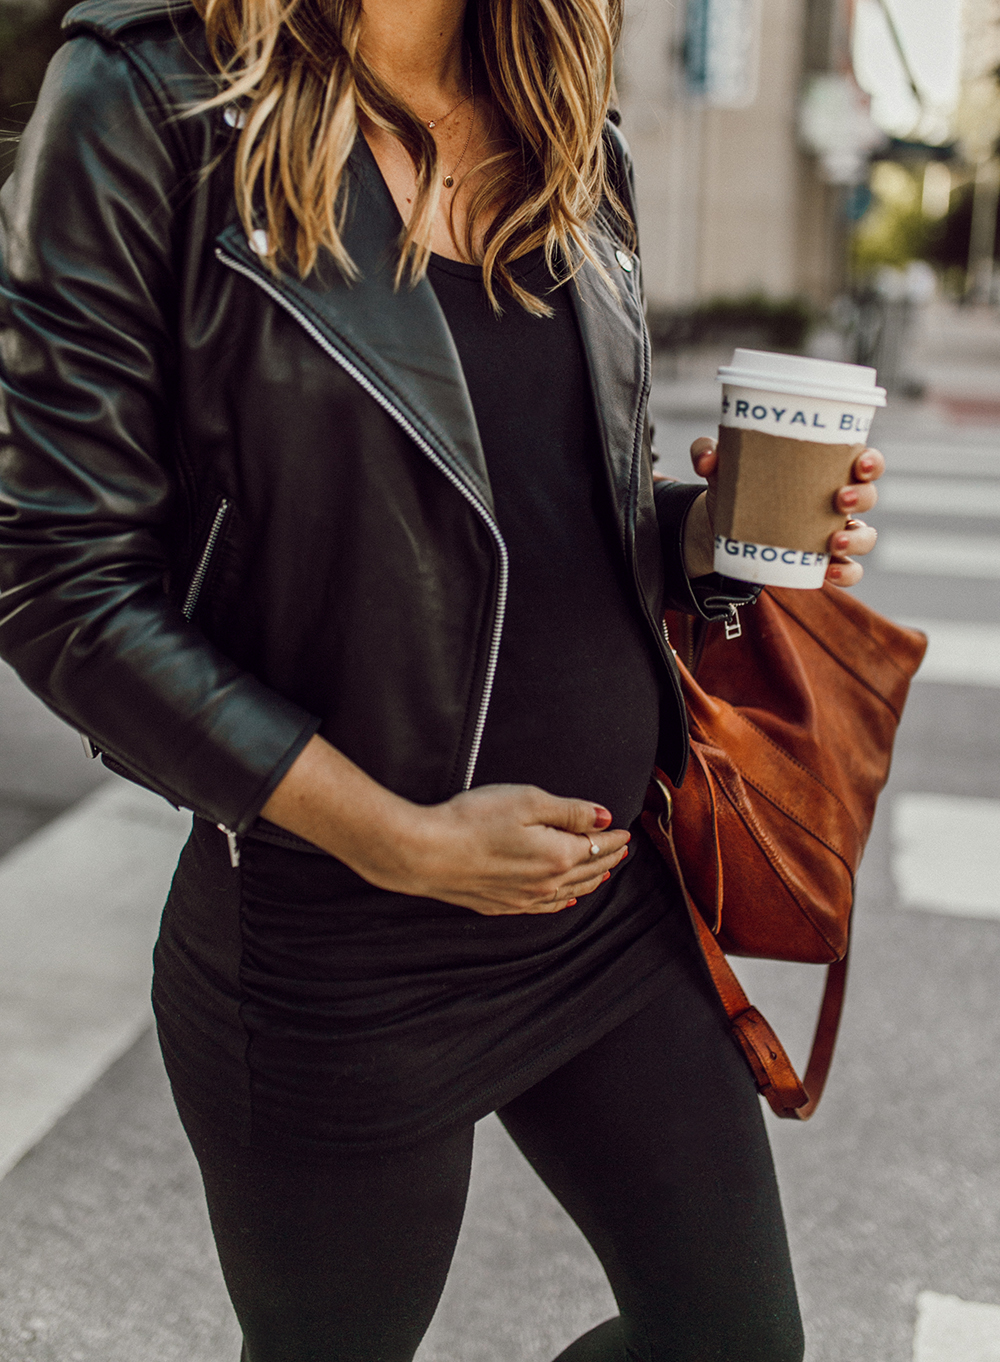 livvyland-blog-olivia-watson-austin-texas-fashion-style-blogger-all-black-athliesure-outfit-pregnant-maternity-sezane-ziggy-leather-jacket-2